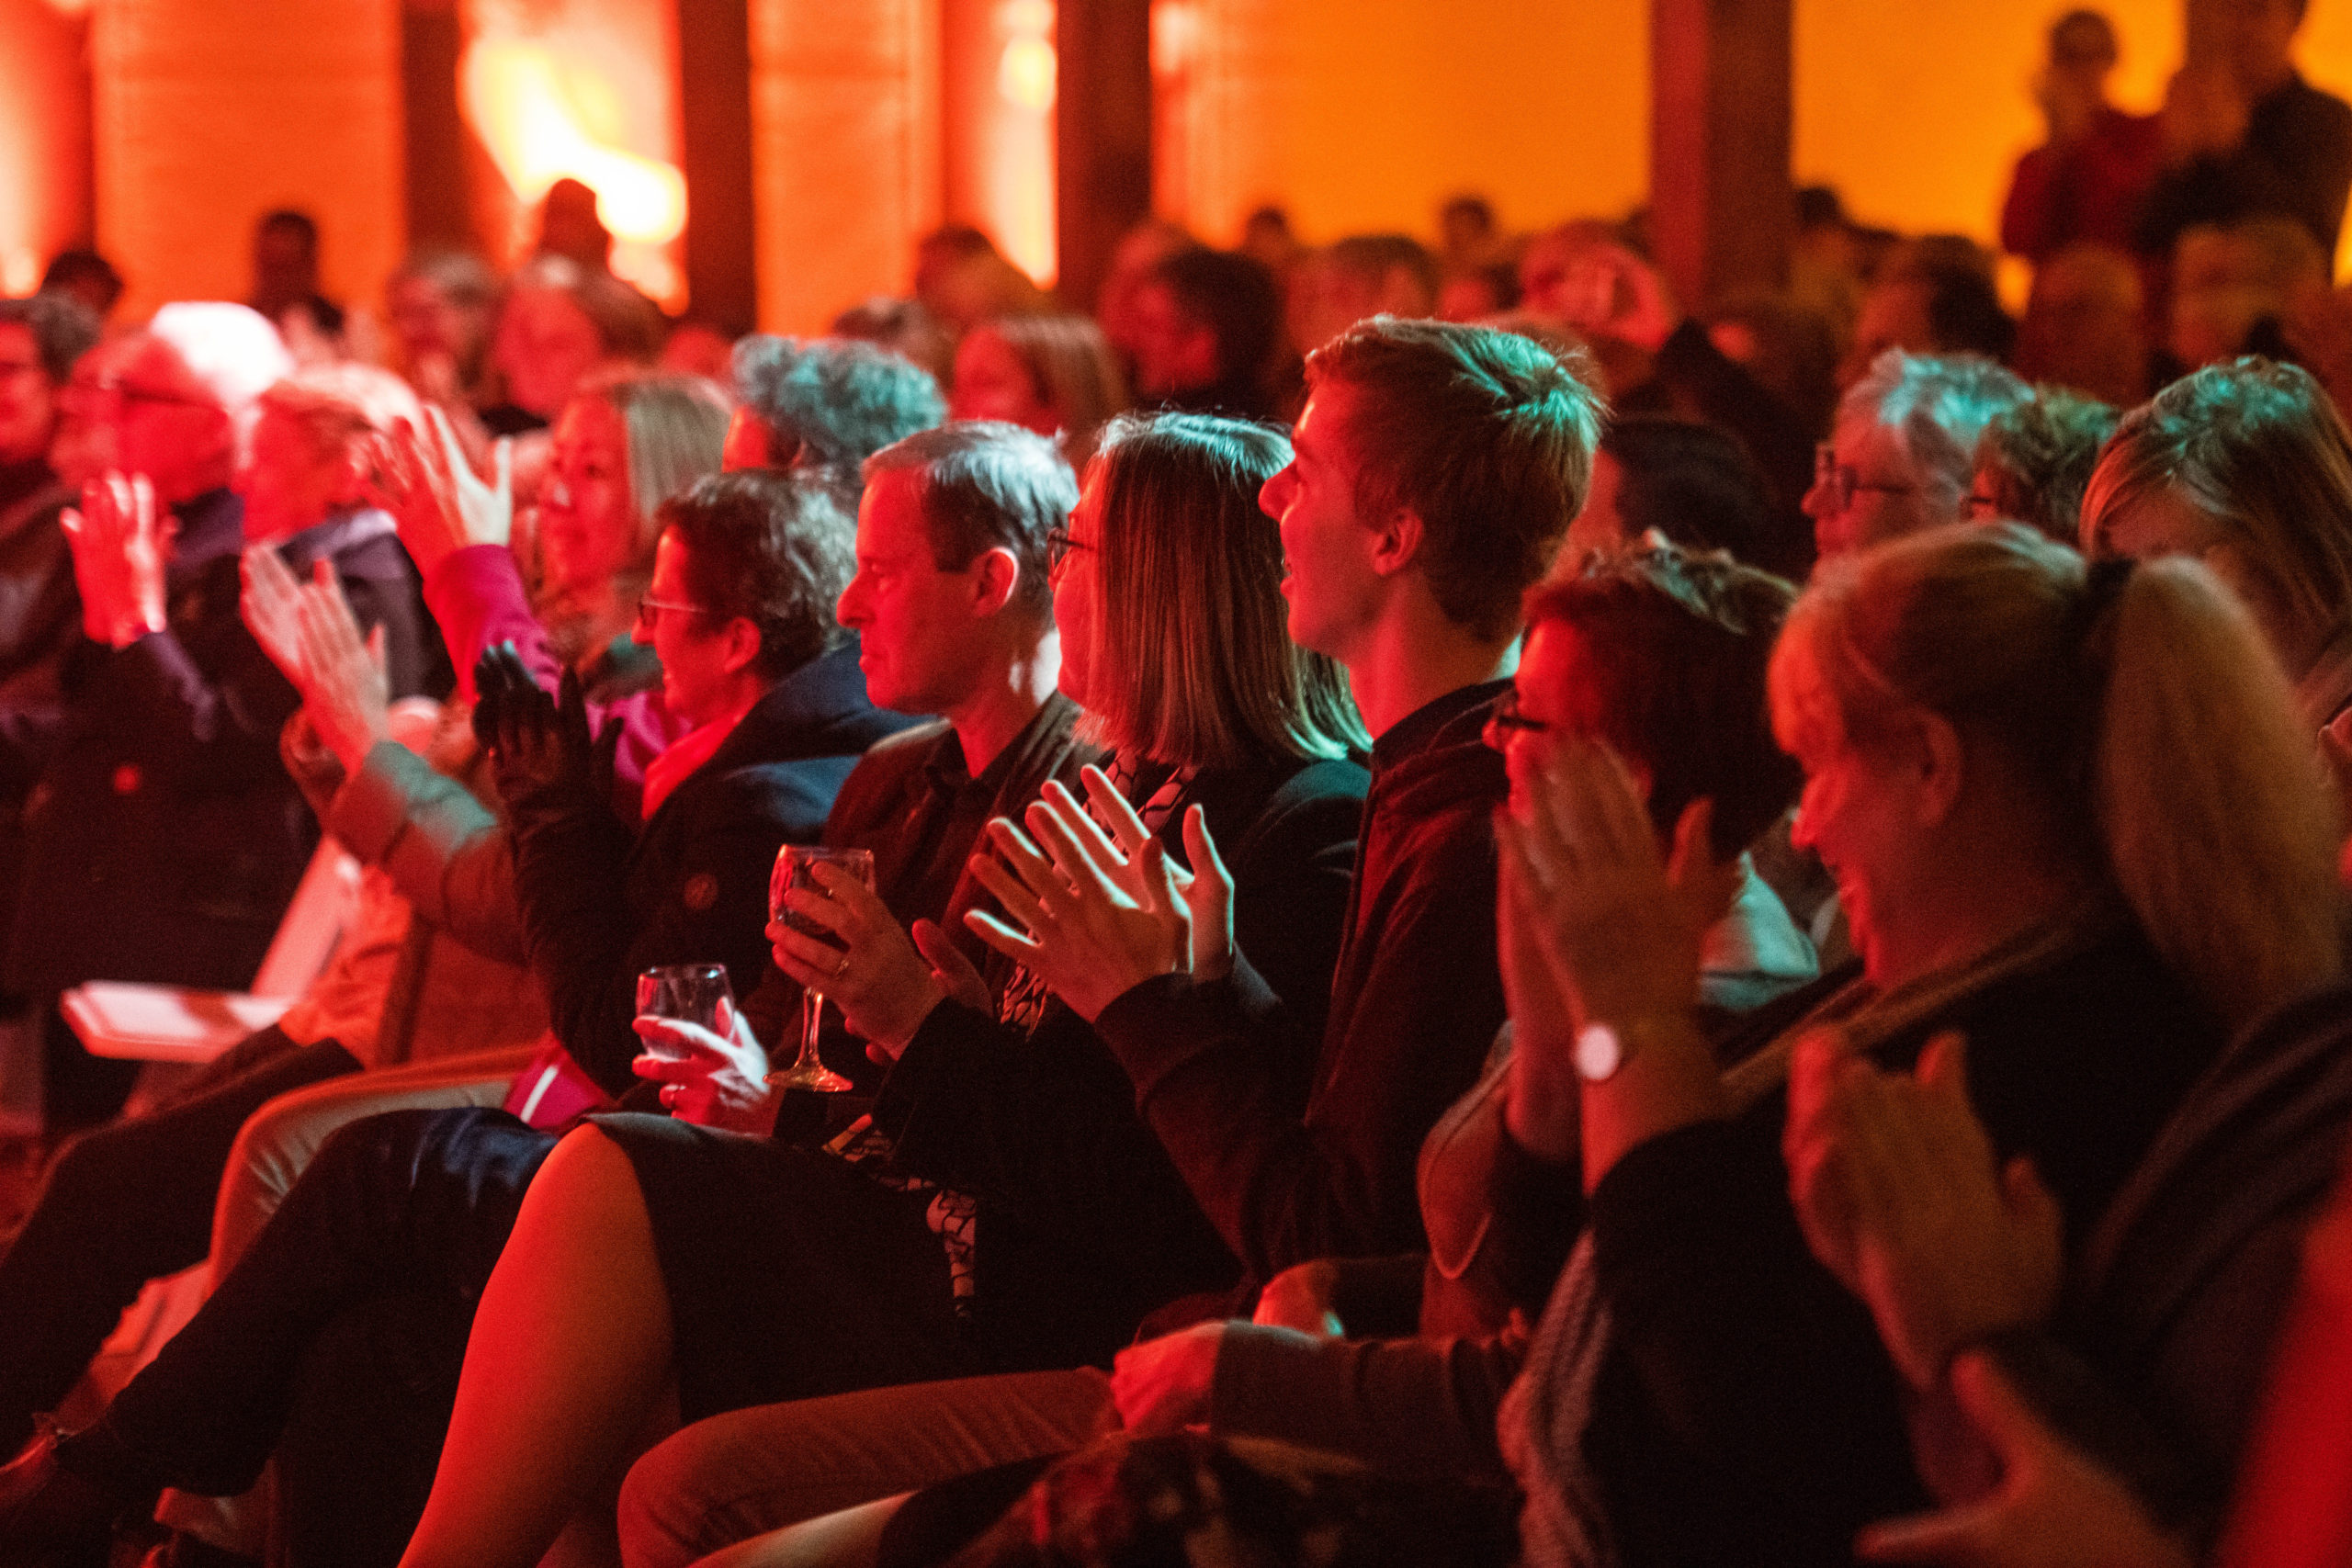 The audience watches and claps for a Festival of Voices performance in 2019, although we cannot see the performers